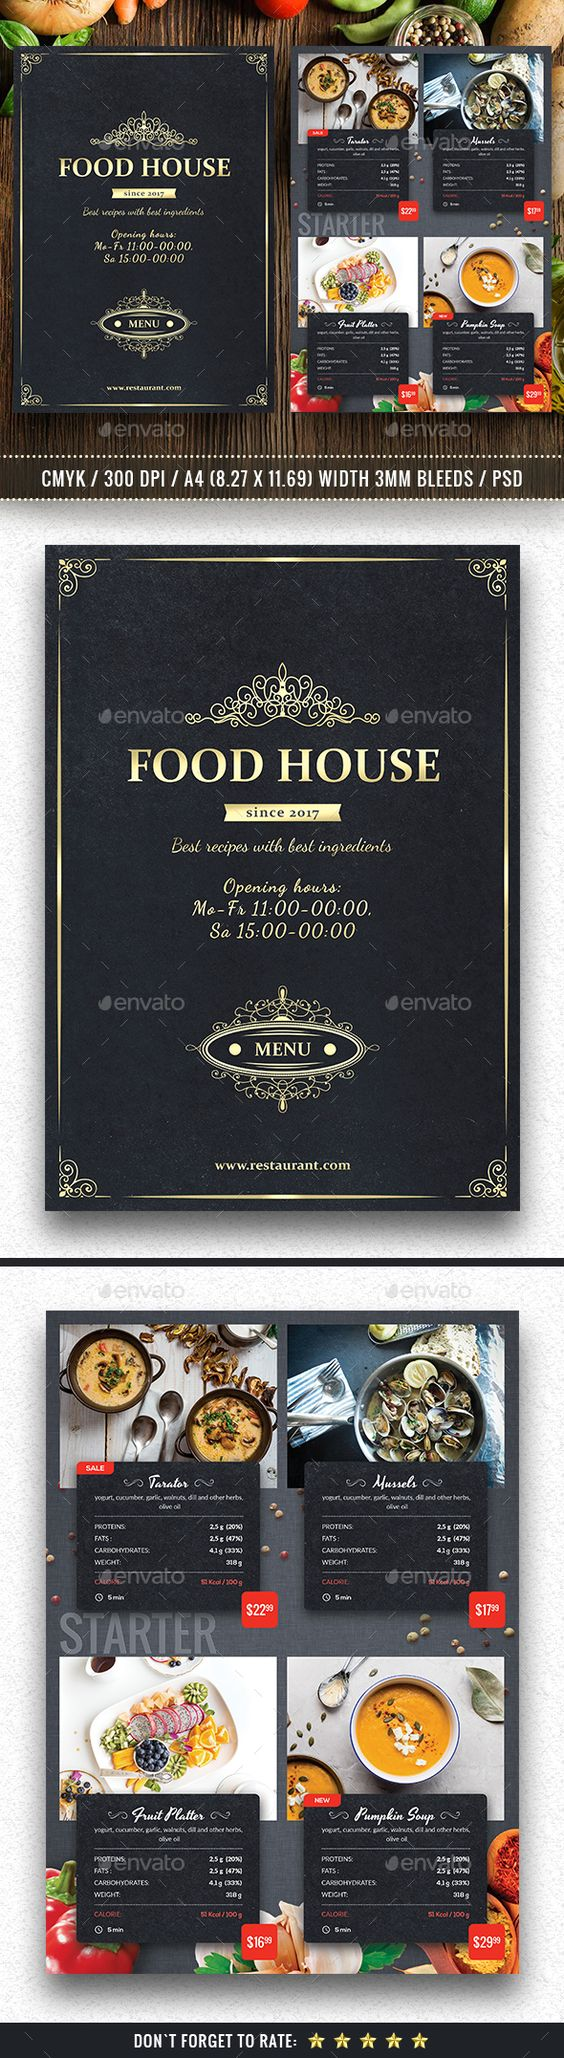 Food House Menu  U2014 Photoshop Psd  Dinner Flyer  Catering